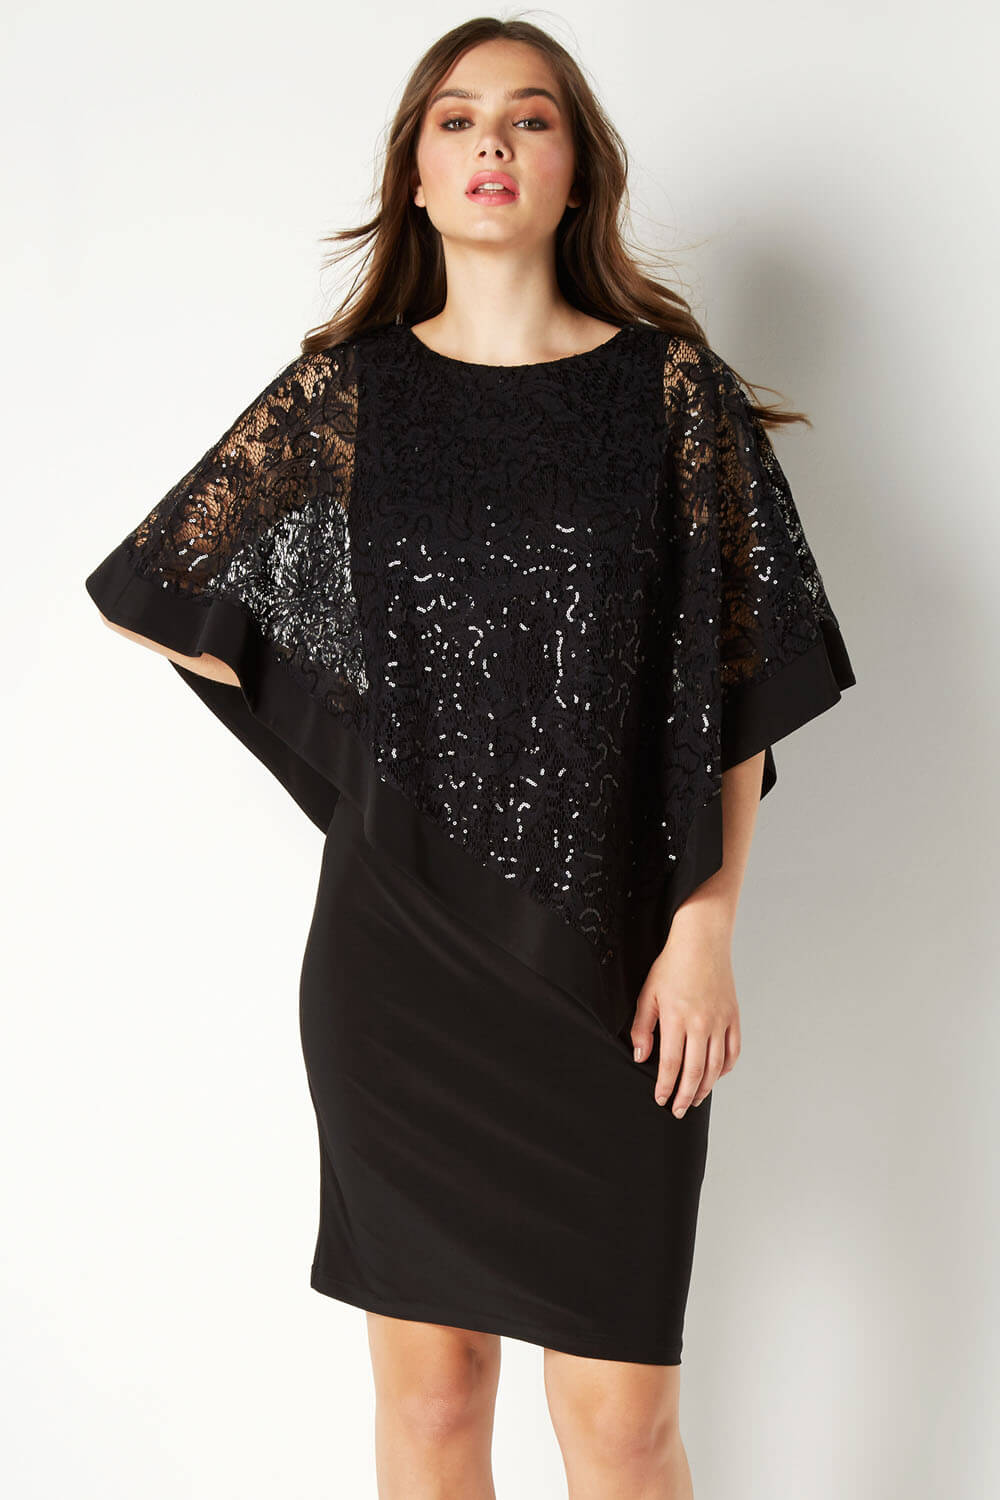 Roman-Originals-Women-039-s-Sequin-Lace-Boat-Neck-Overlay-Knee-Length-Dress thumbnail 14